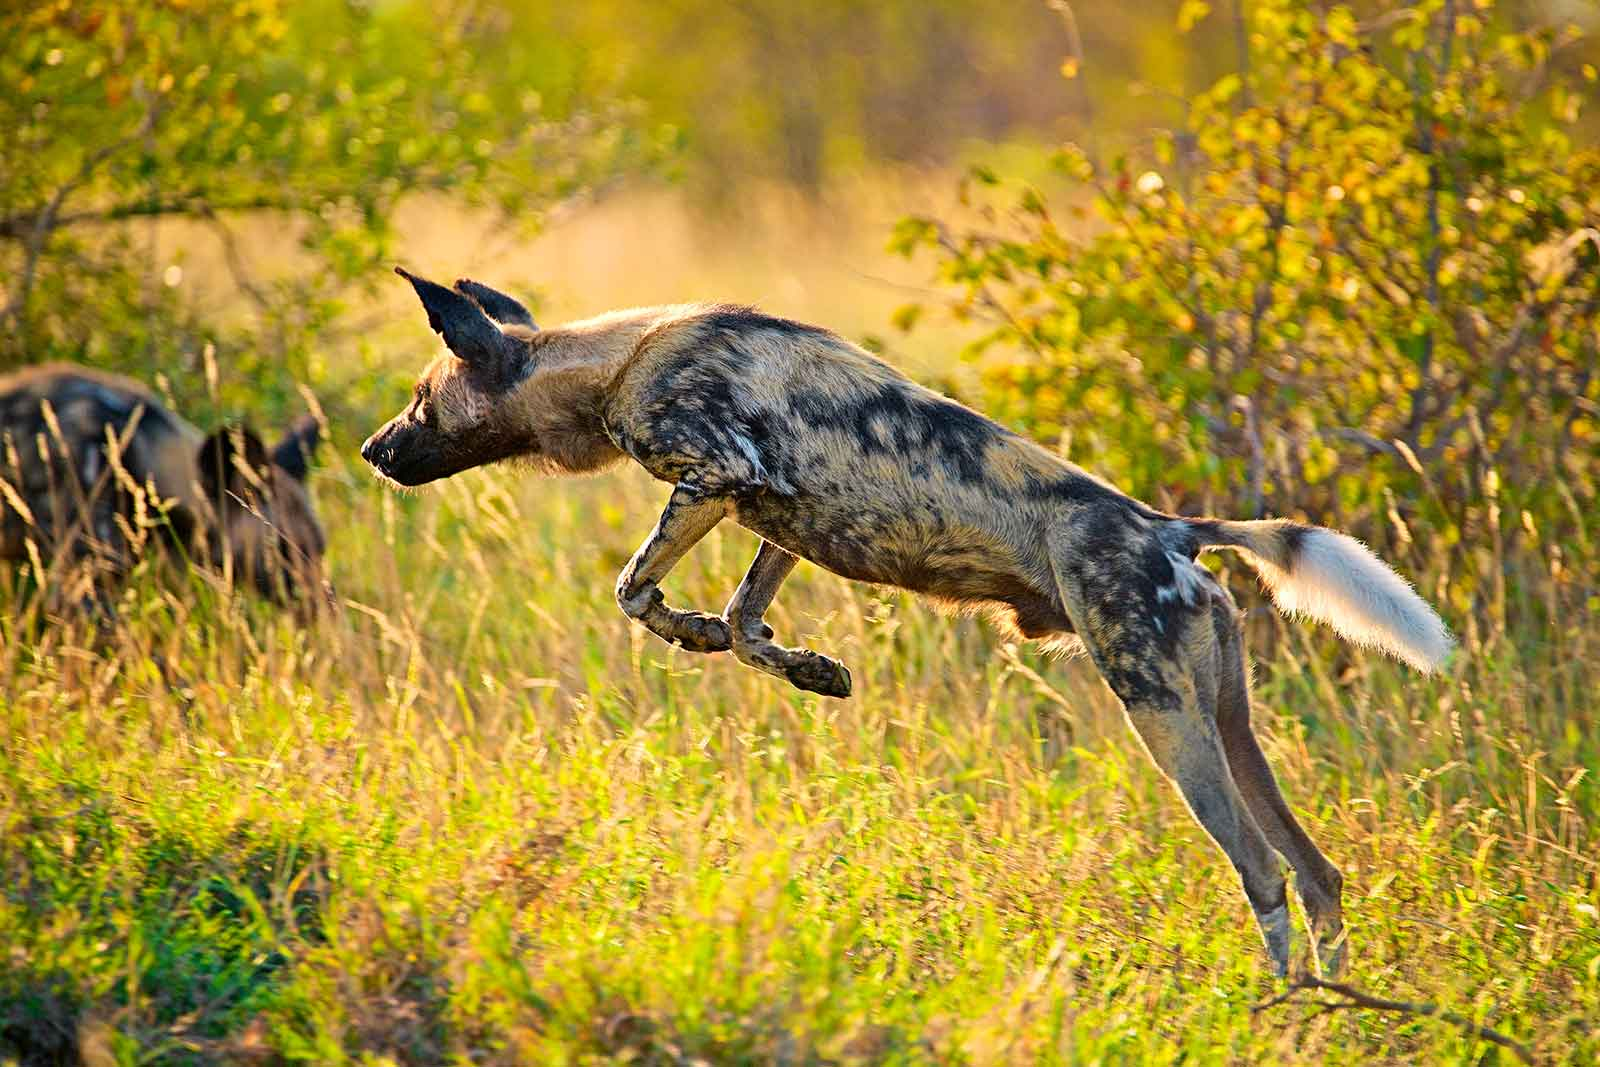 Wild Dog Leaping - Image : Shannon Benson